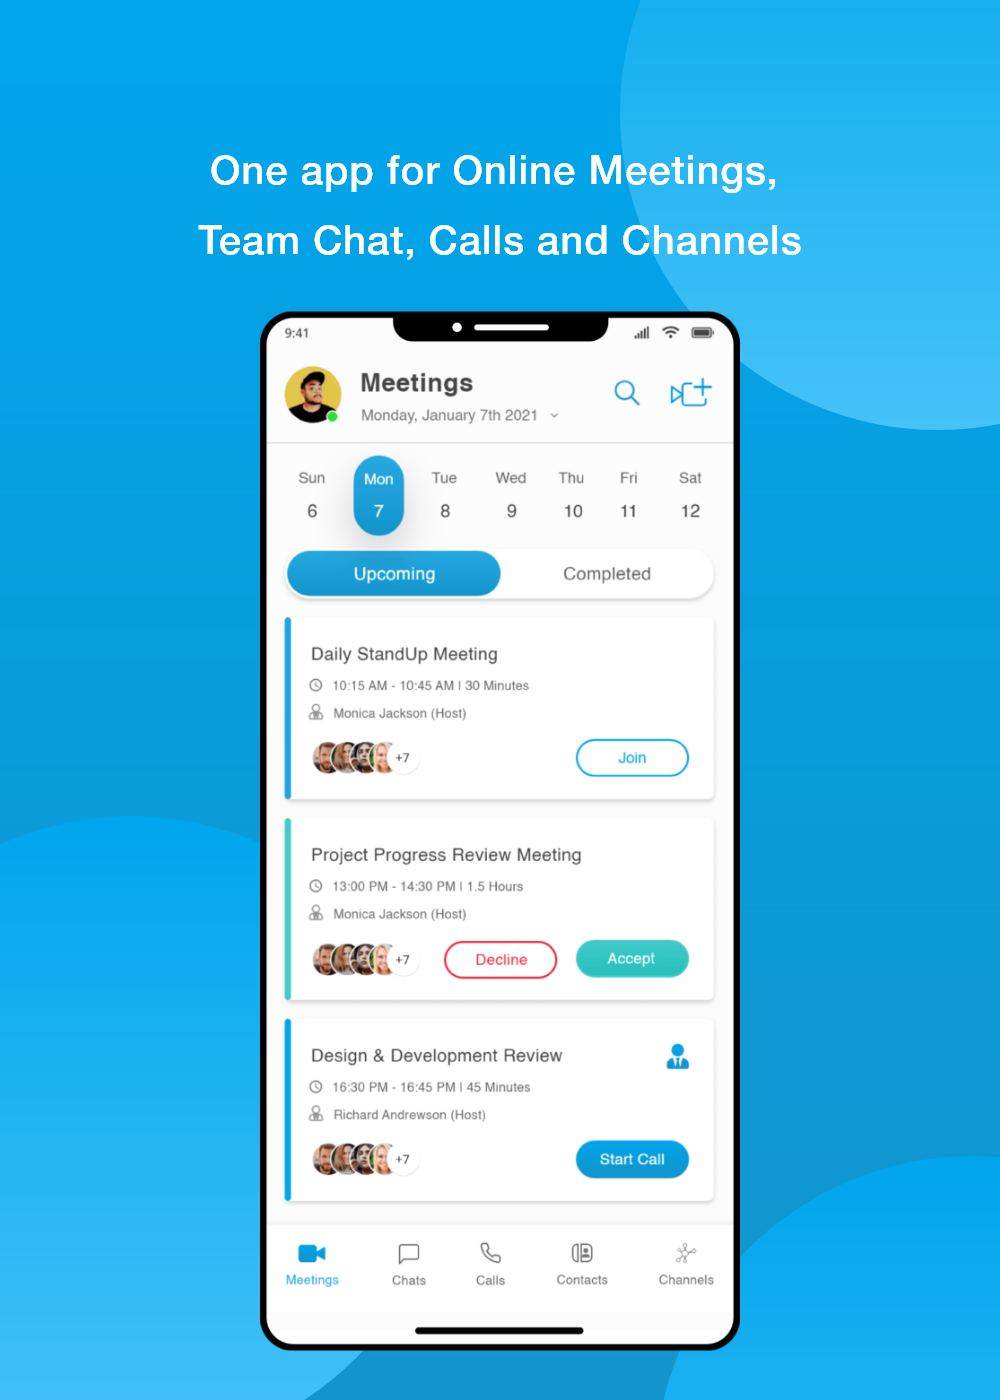 One app for online meetings, Team chat, calls and channels